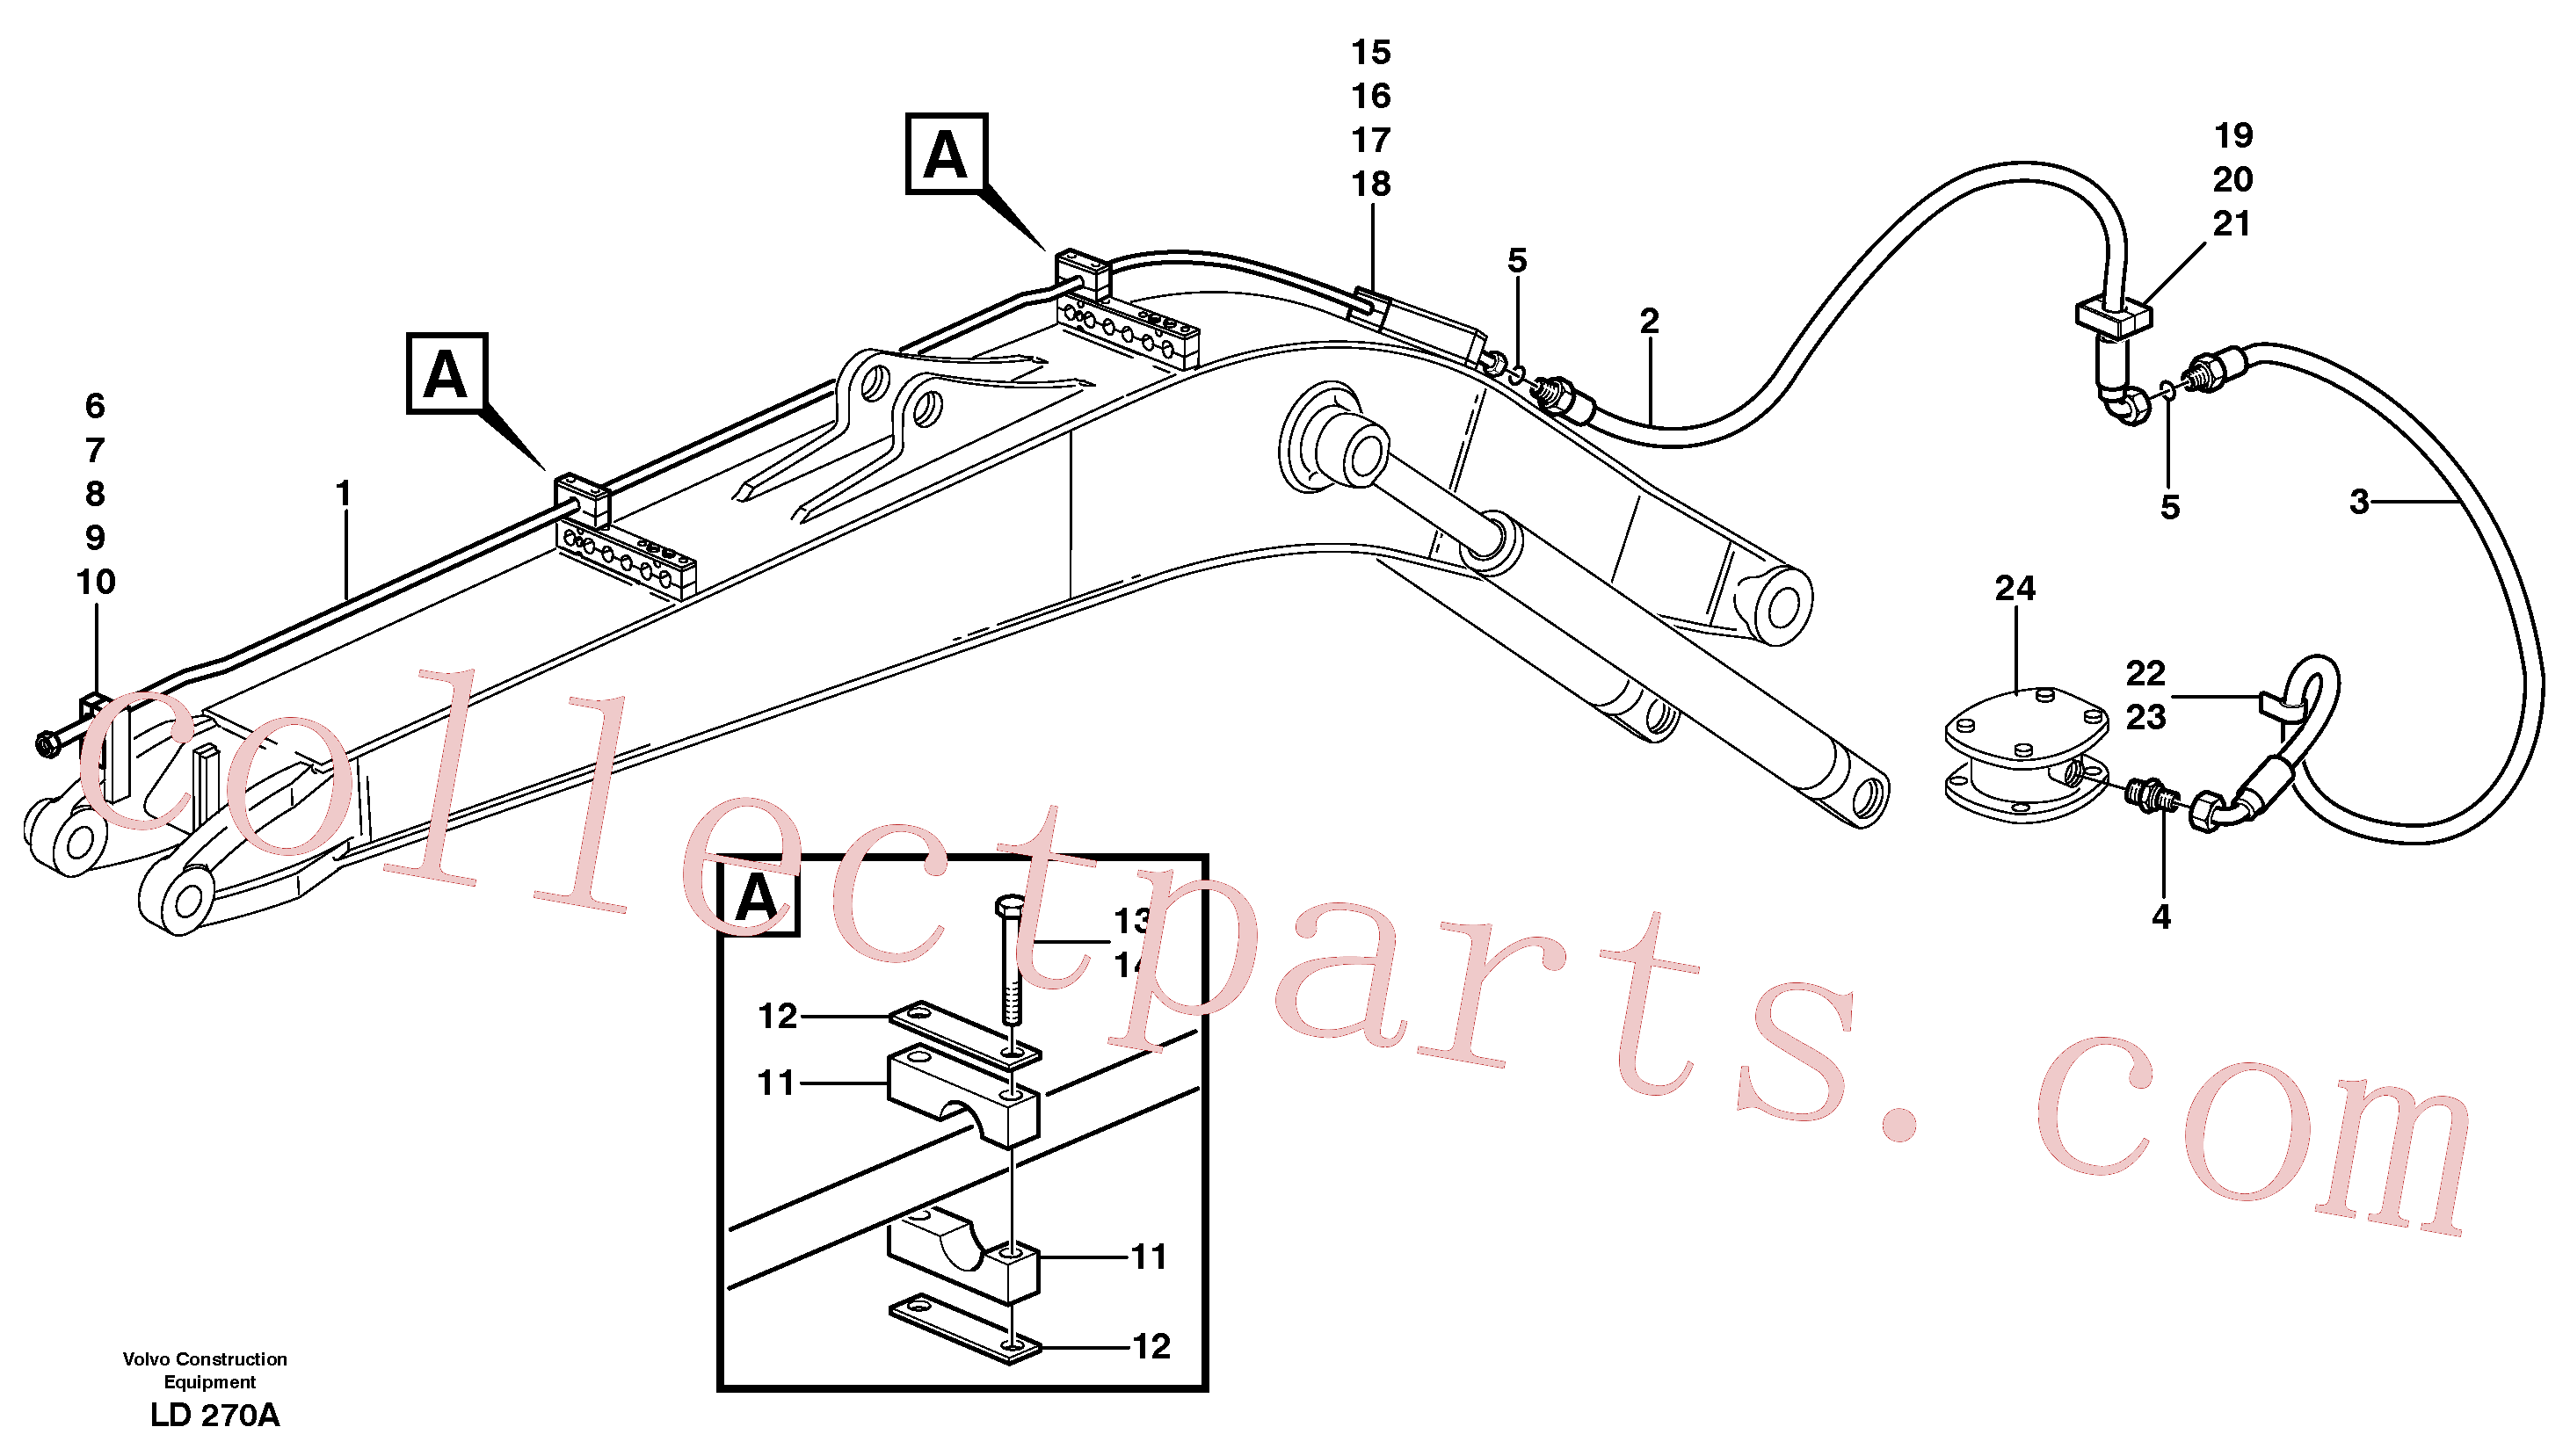 VOE14371654 for Volvo Hammer hydraulics on mono boom, return line(LD270A assembly)